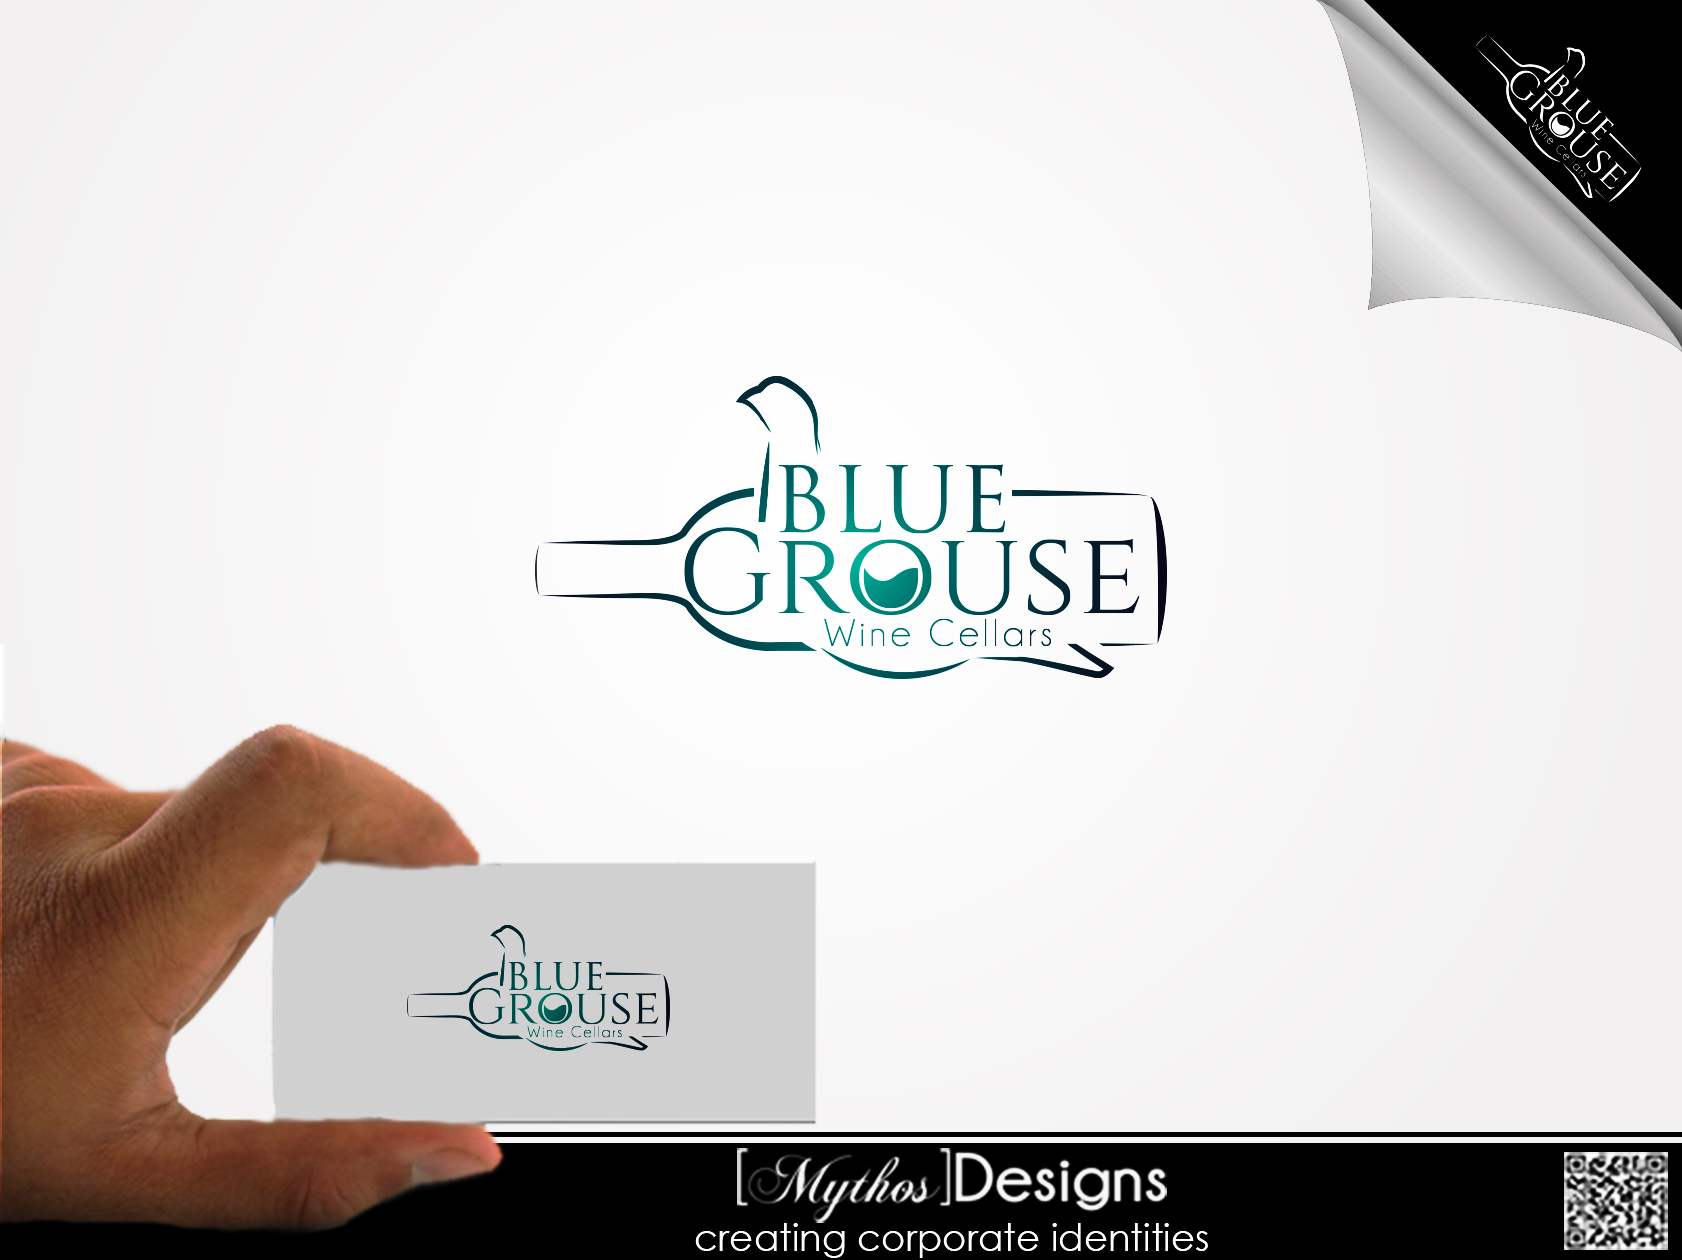 Logo Design by Mythos Designs - Entry No. 86 in the Logo Design Contest Creative Logo Design for Blue Grouse Wine Cellars.